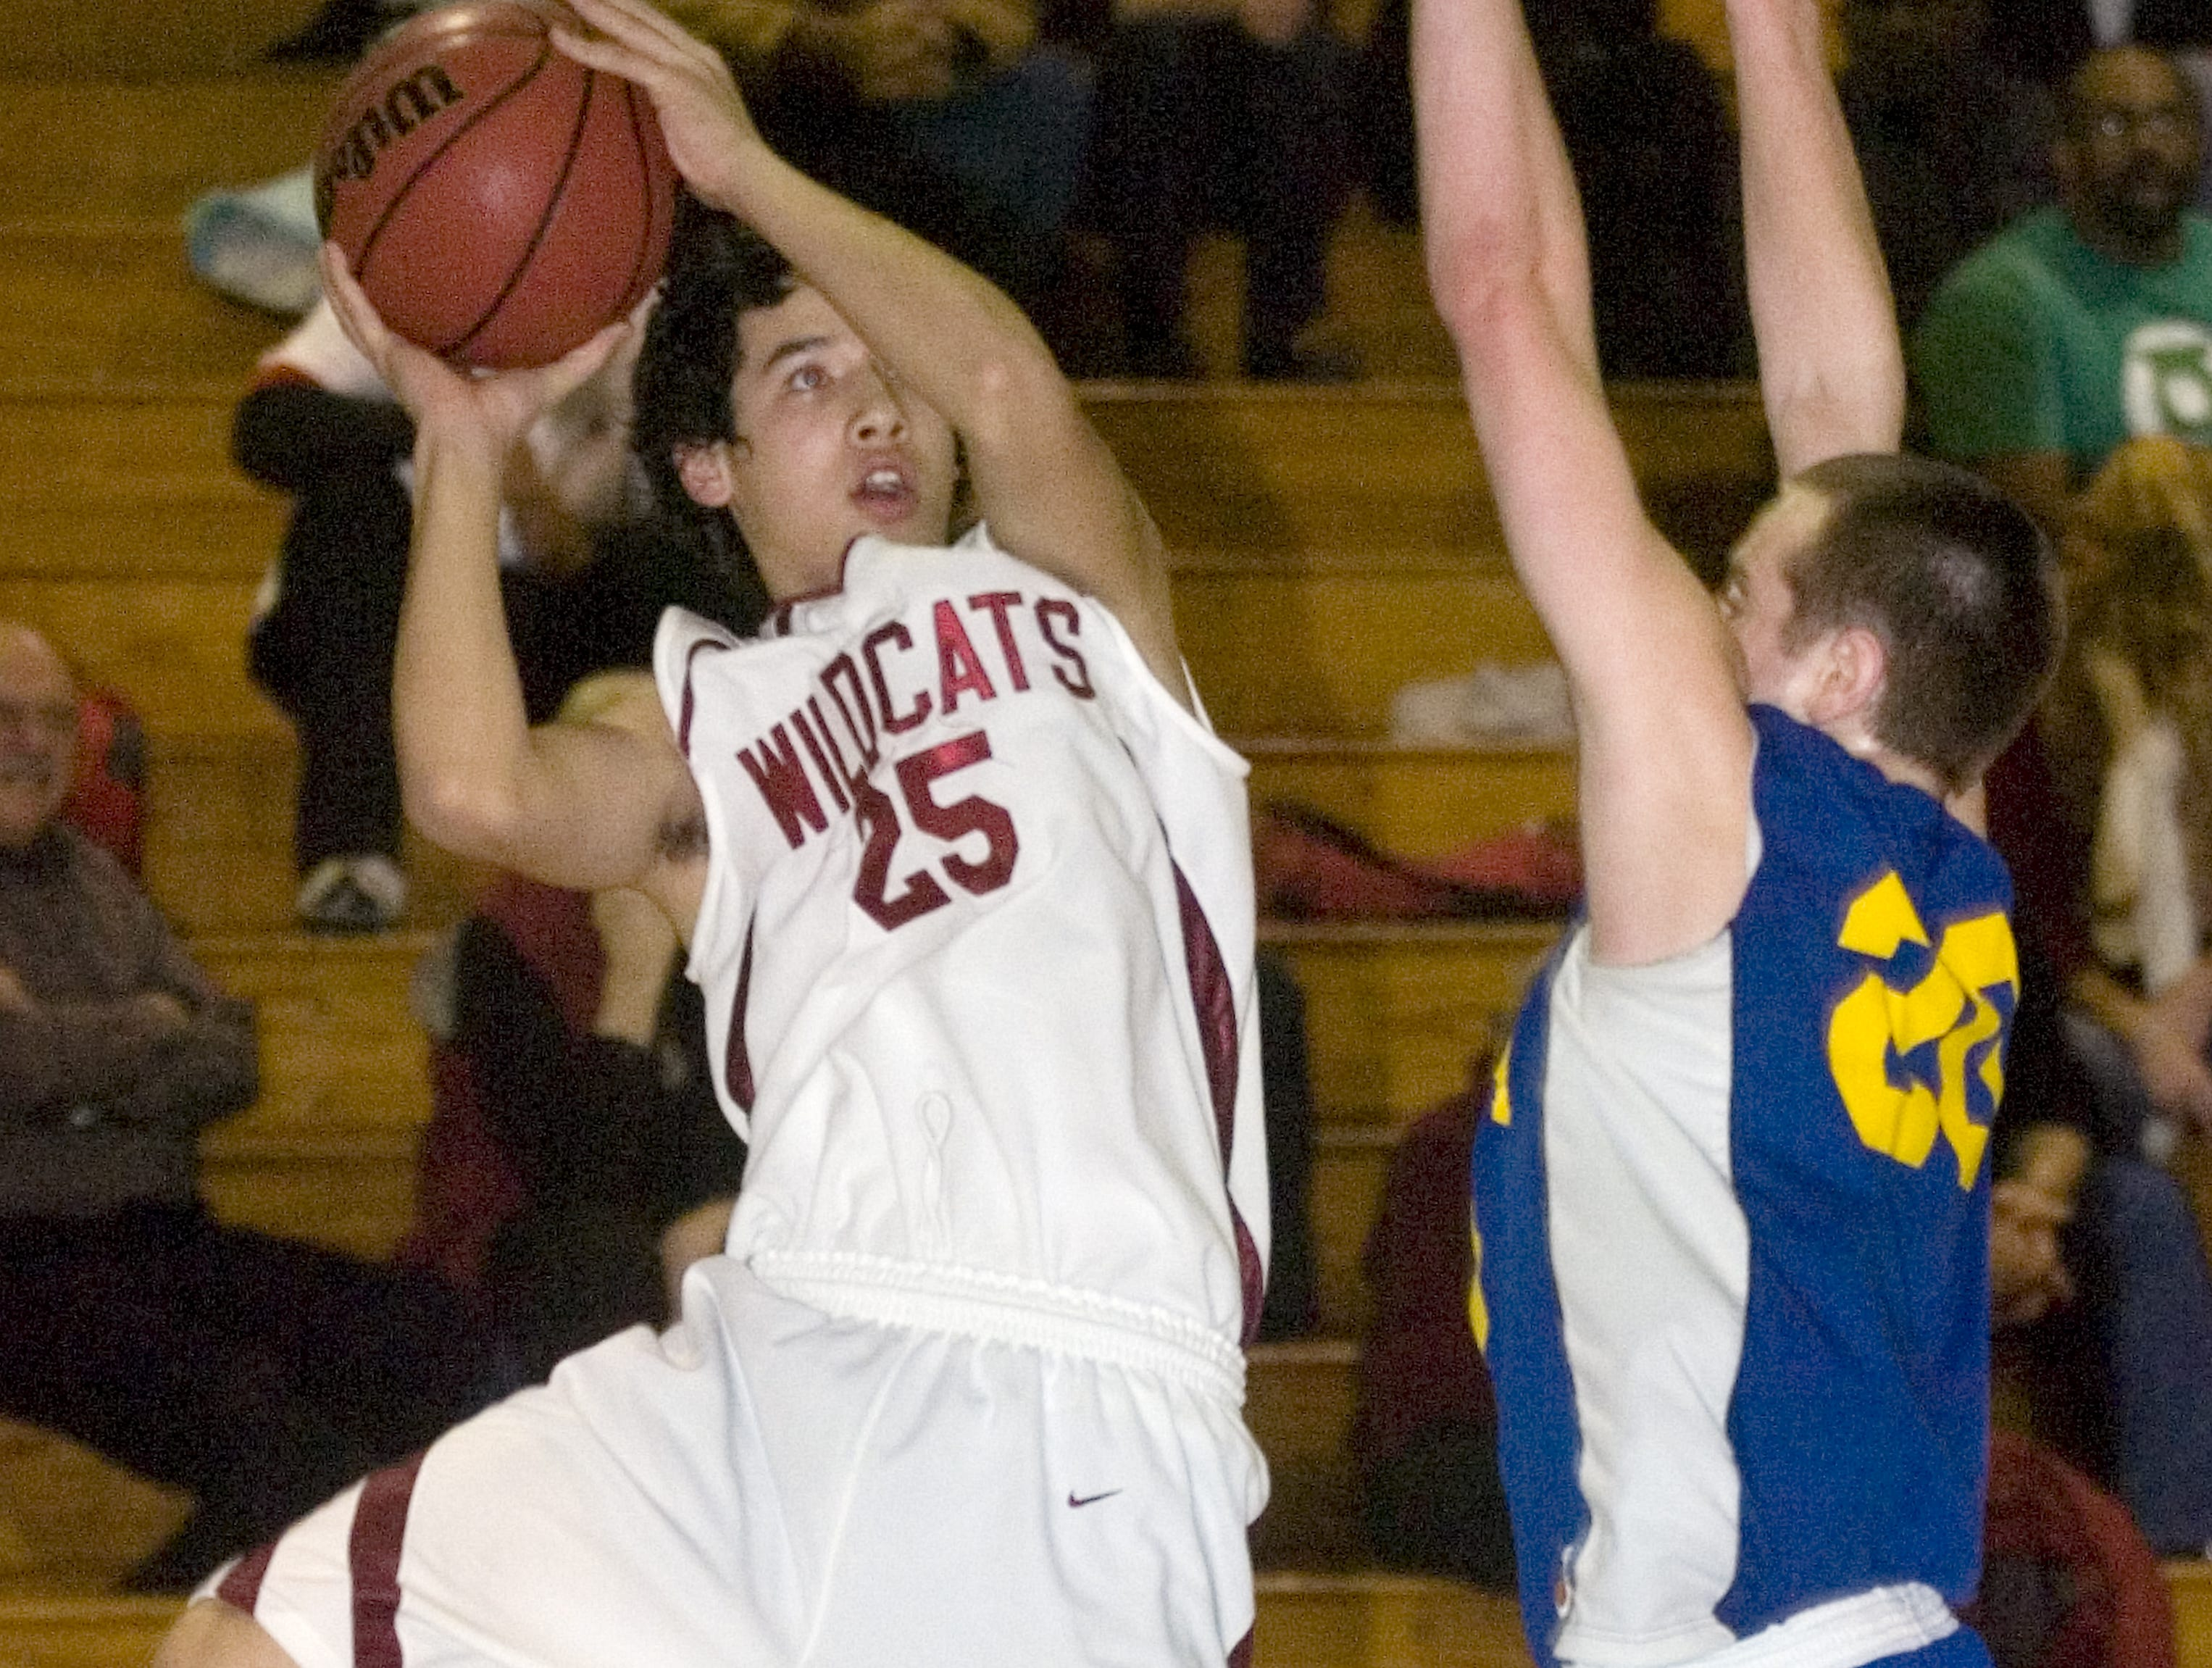 2008: Johnson City's Gil Choi, left, goes up against Oneonta's Ben Ehrets in the second quarter of Tuesday's game at JC.